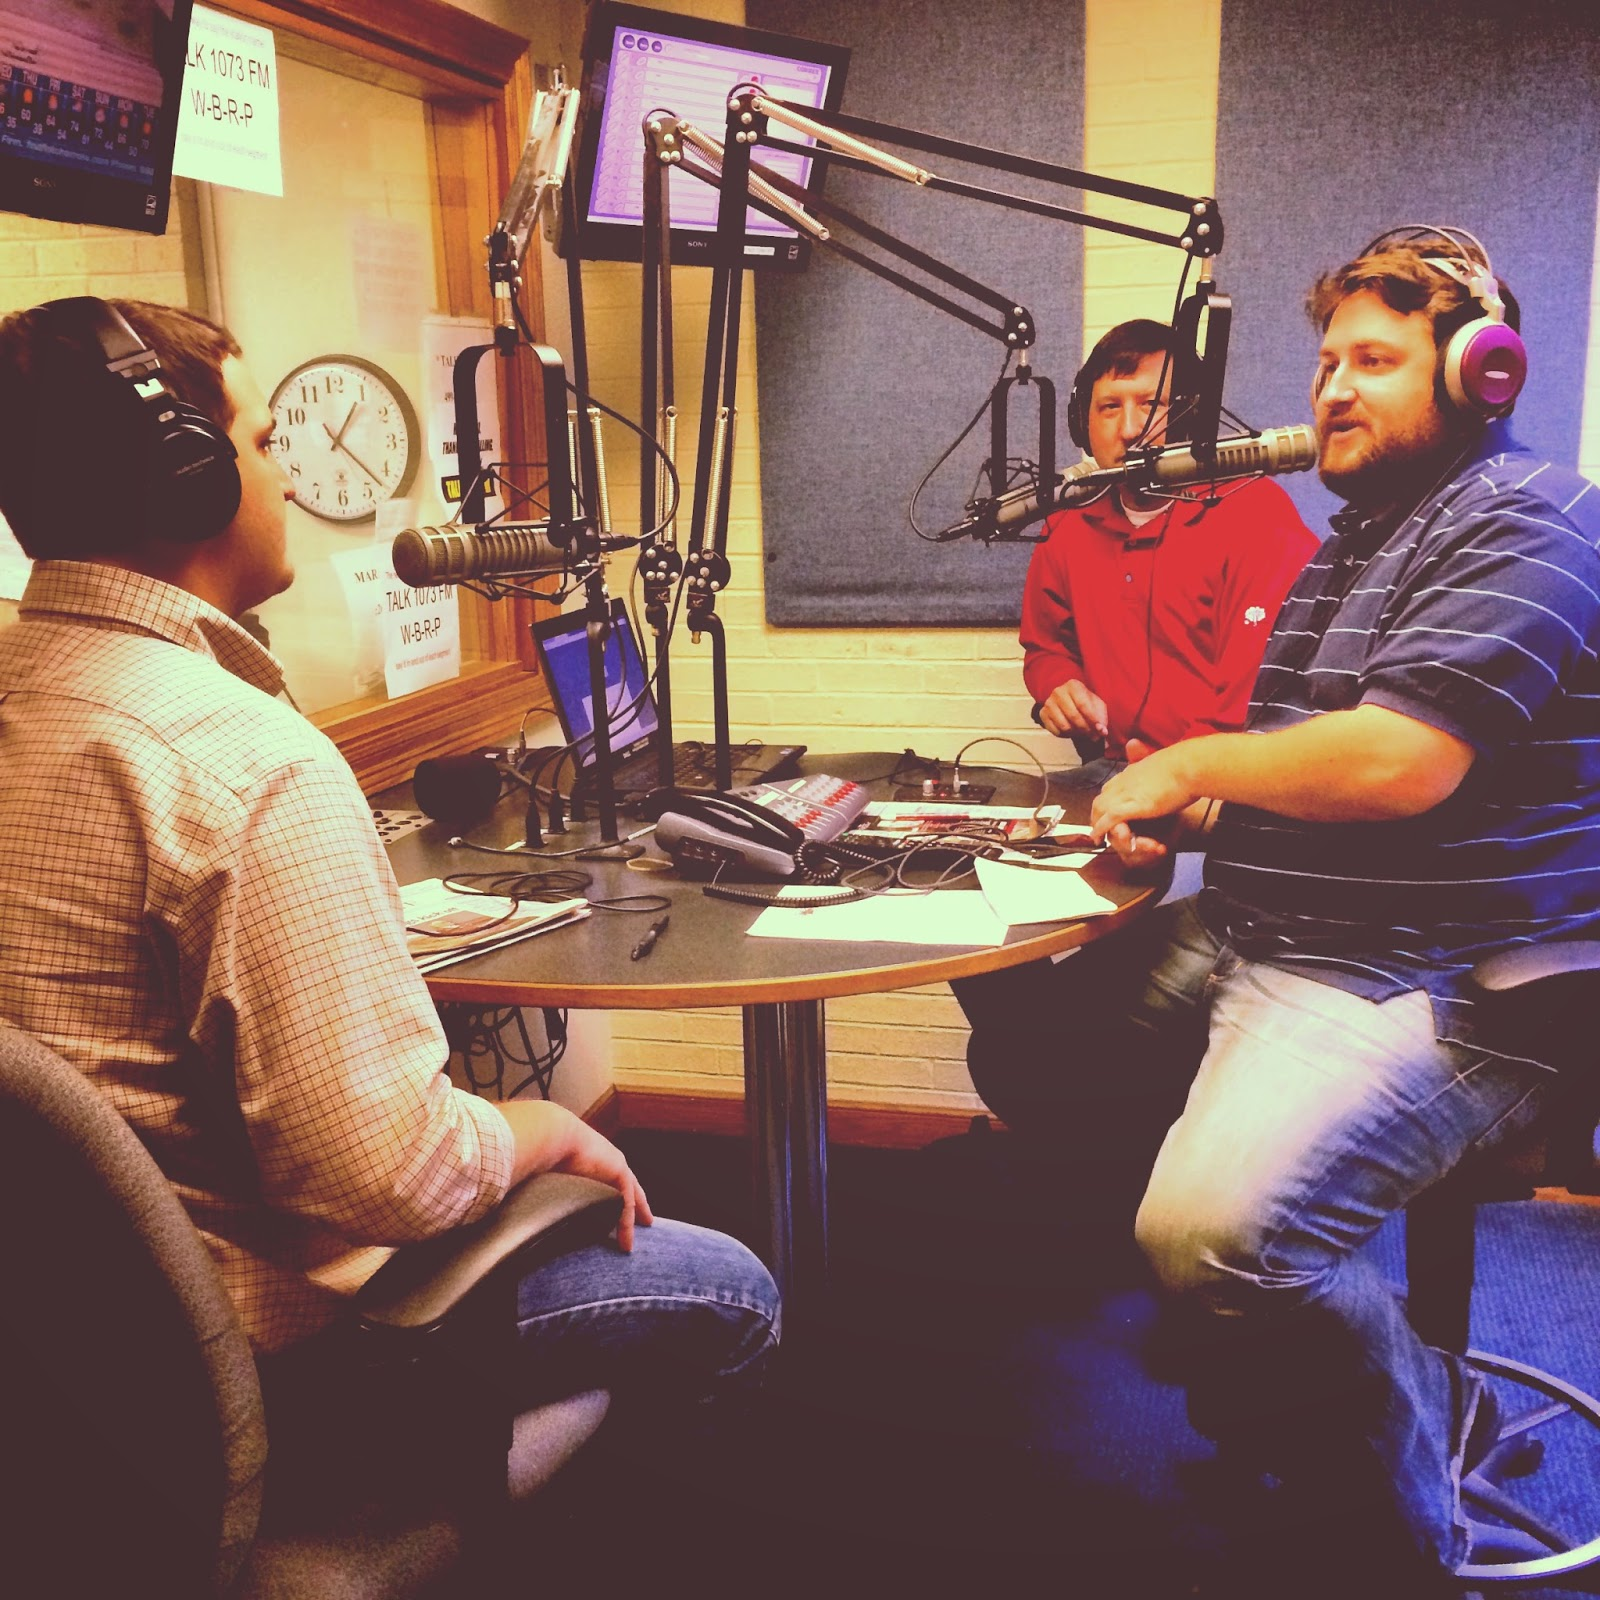 Barrett Miller, Robbie Trahan, and Jay Ducote in Studio at Talk 107.3 FM in Baton Rouge